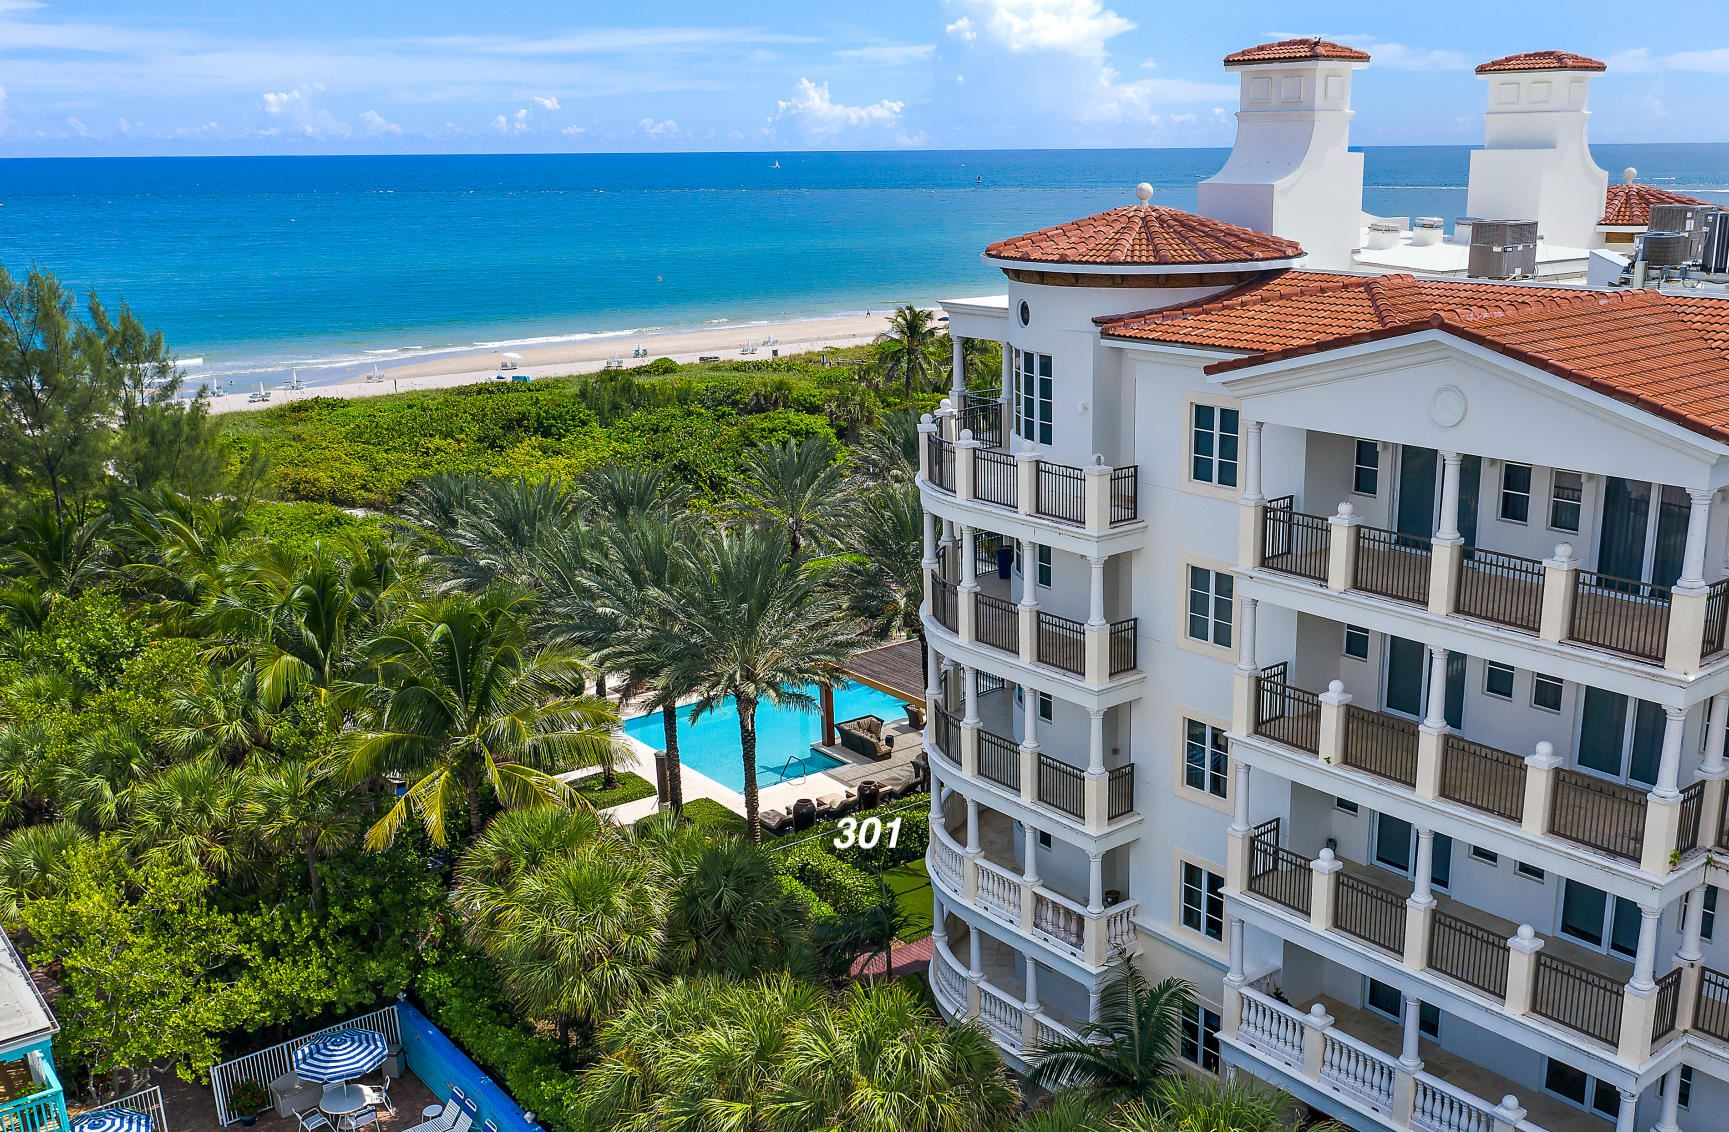 155 S Ocean Avenue #301, Palm Beach Shores, FL 33404 - #: RX-10660158